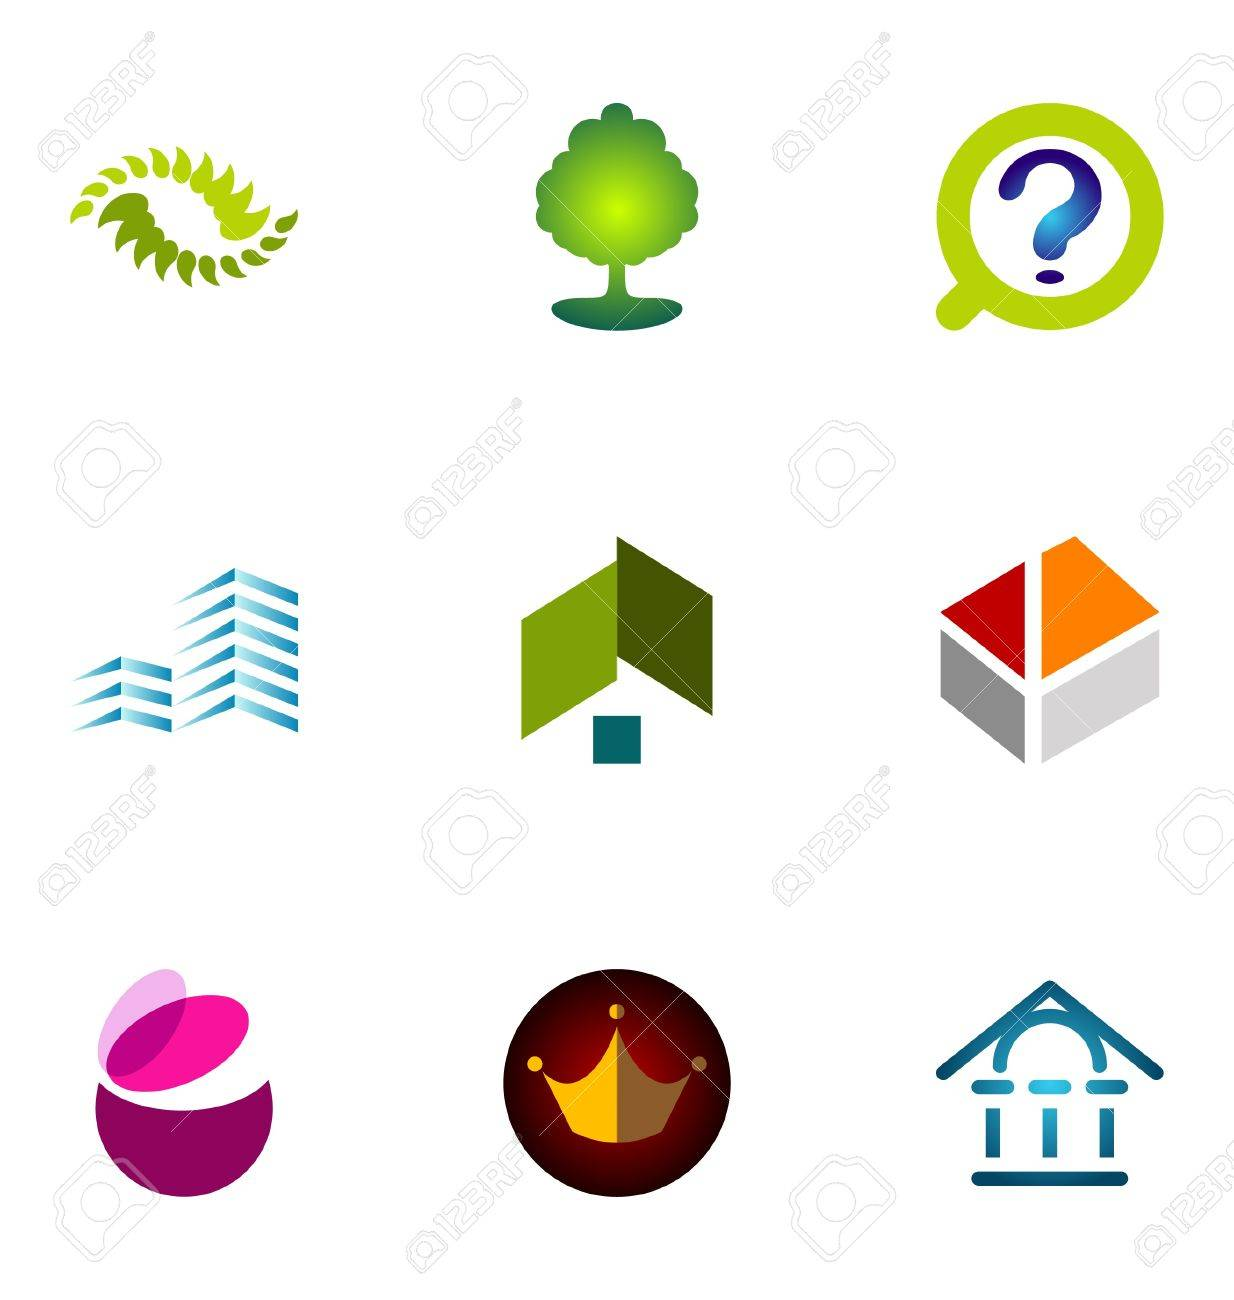 Logo design elements set 11 Stock Vector - 10042534